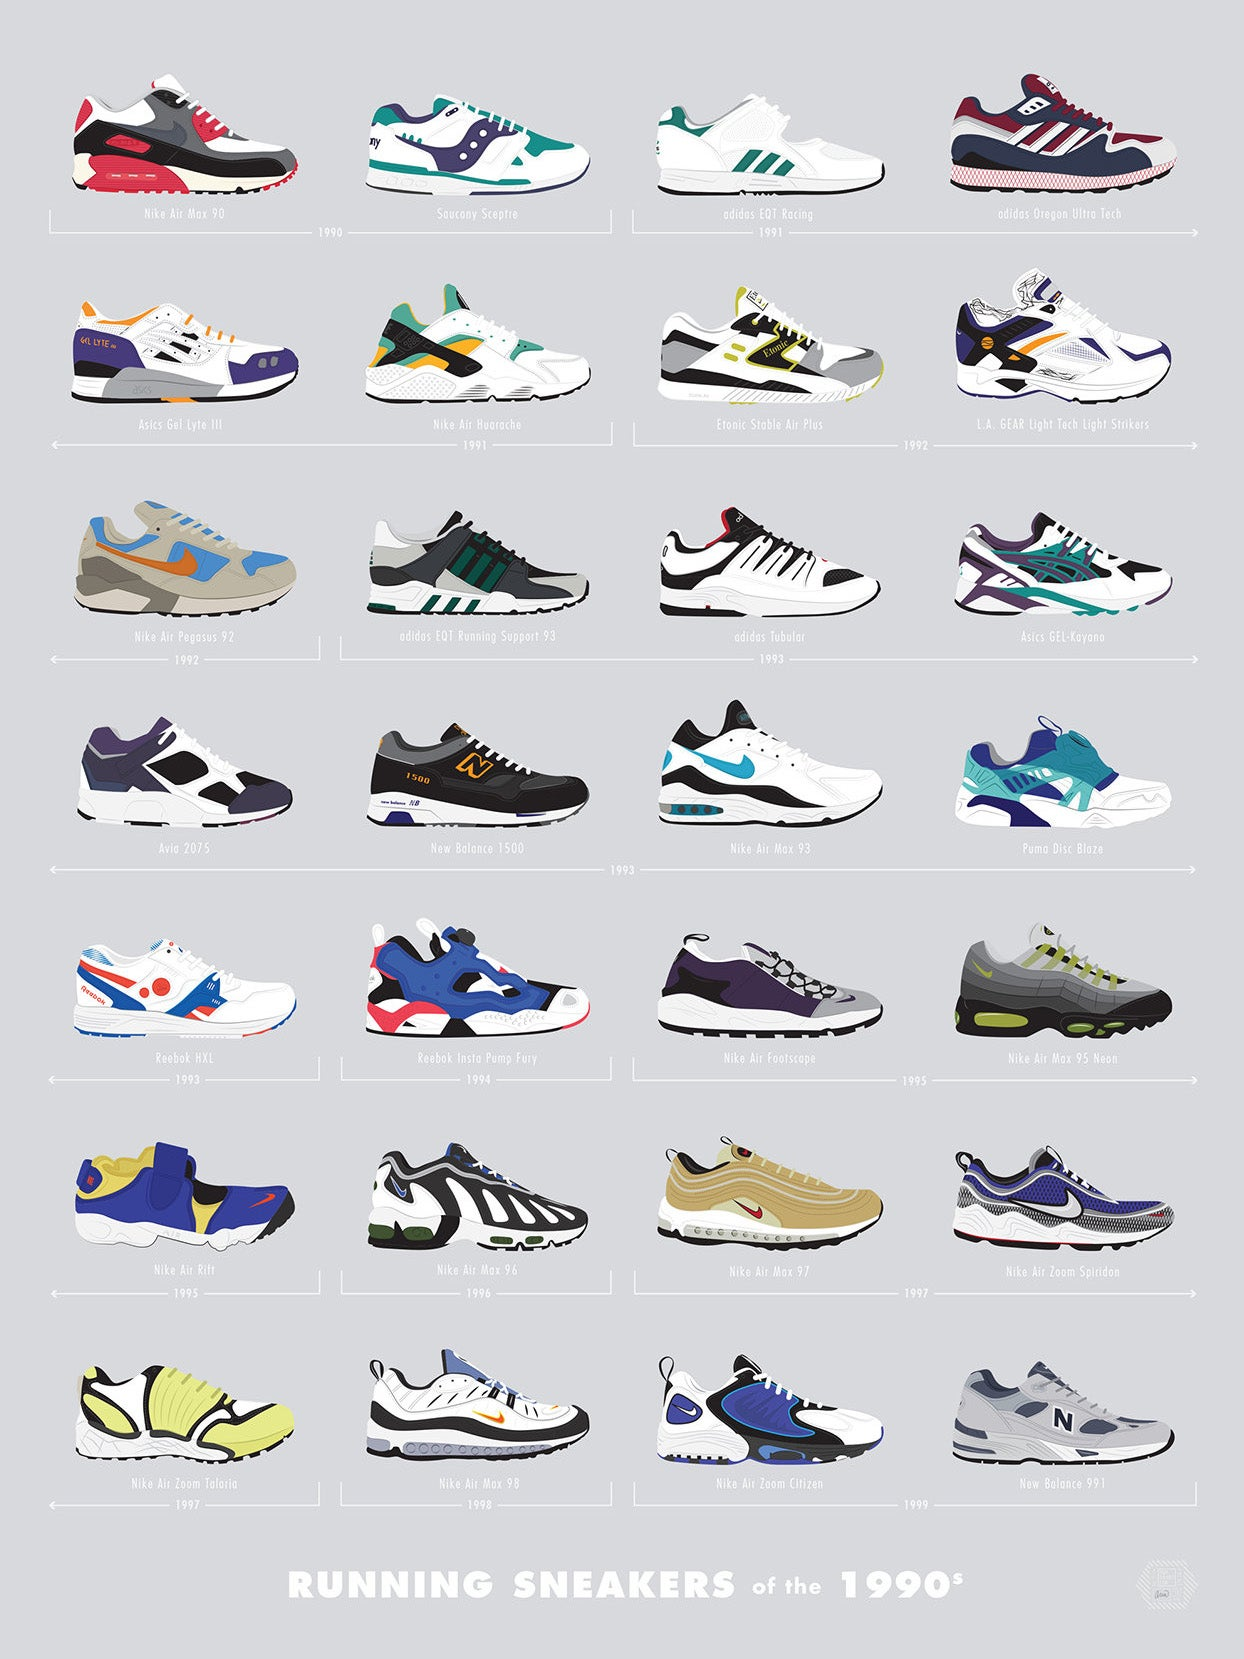 Iconic basketball and running sneakers from the 80s and 90s